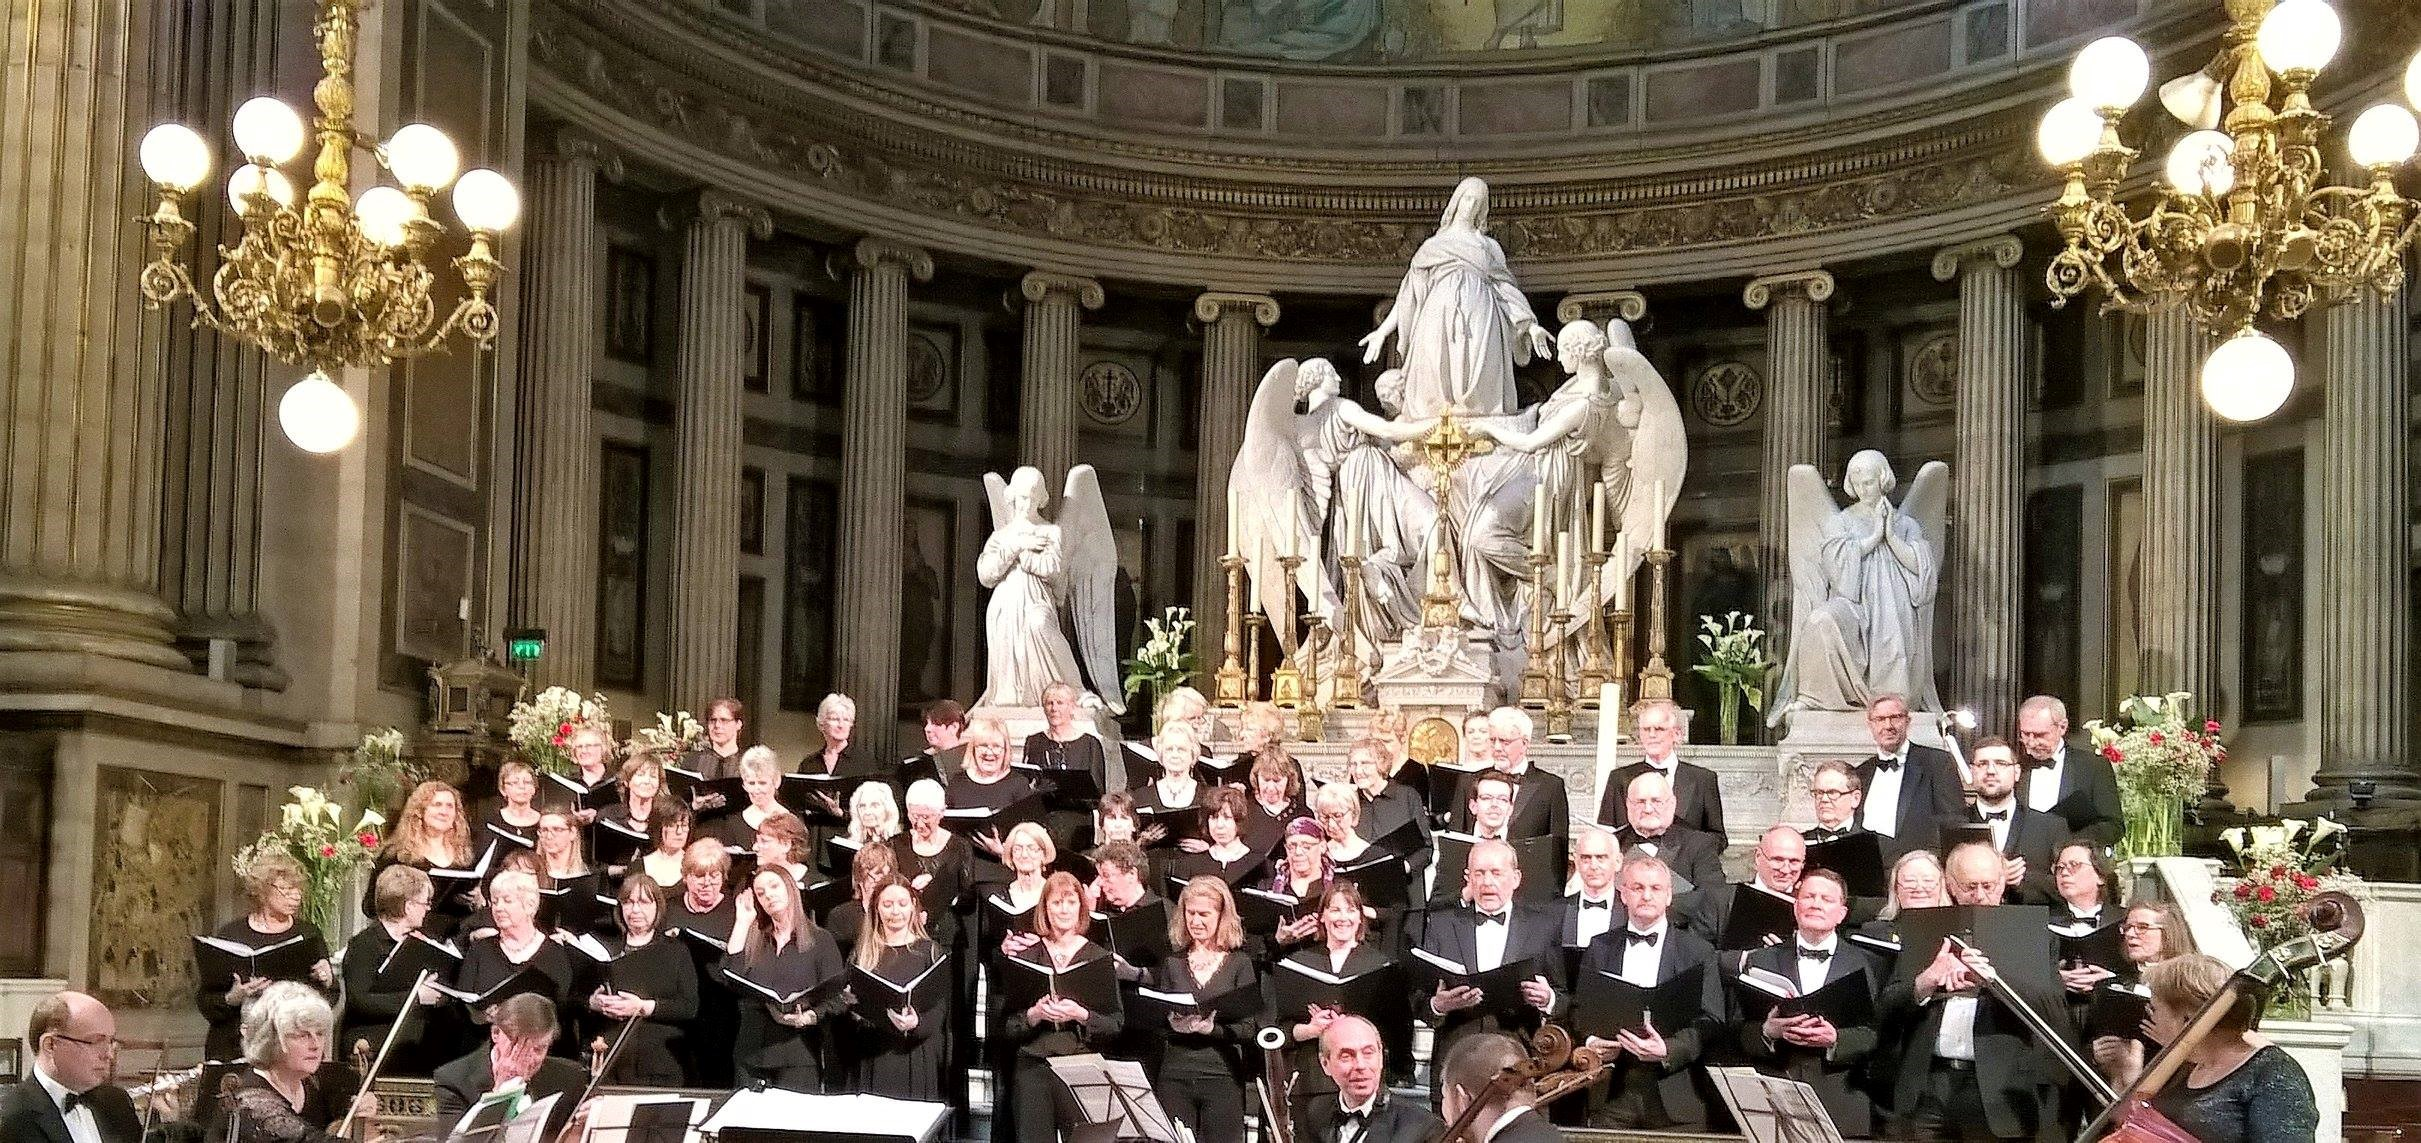 The Village Singers performing at the Eglise de la Madeleine in Paris.